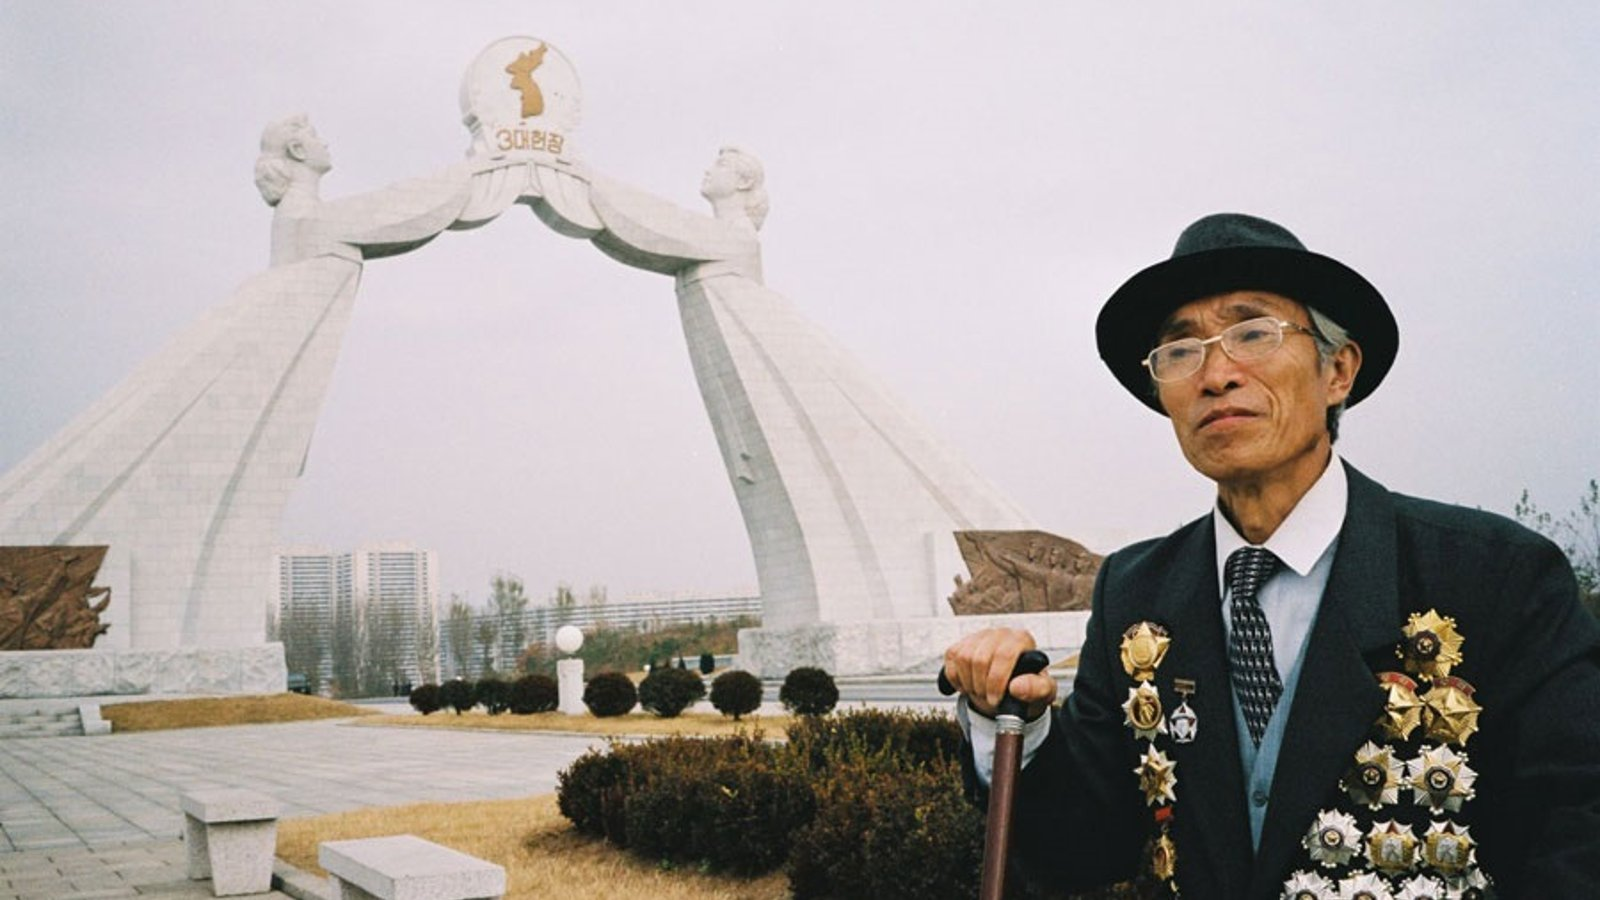 North Korea - The Life of a North Korean Textile Worker